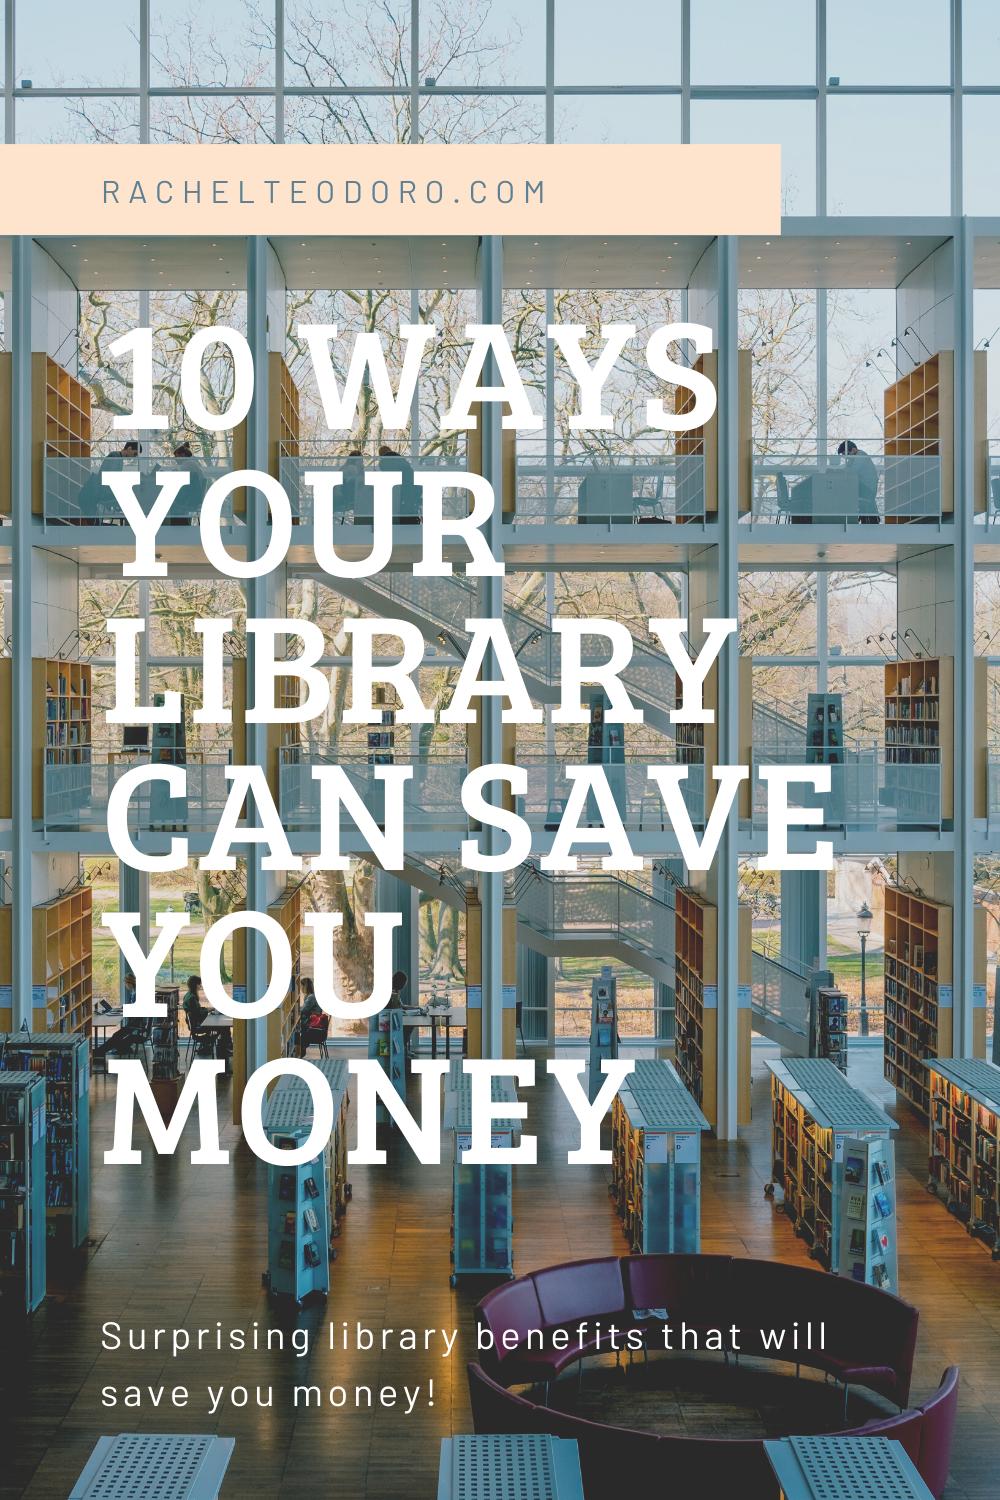 Surprising Library Benefits that Will Save You Money!